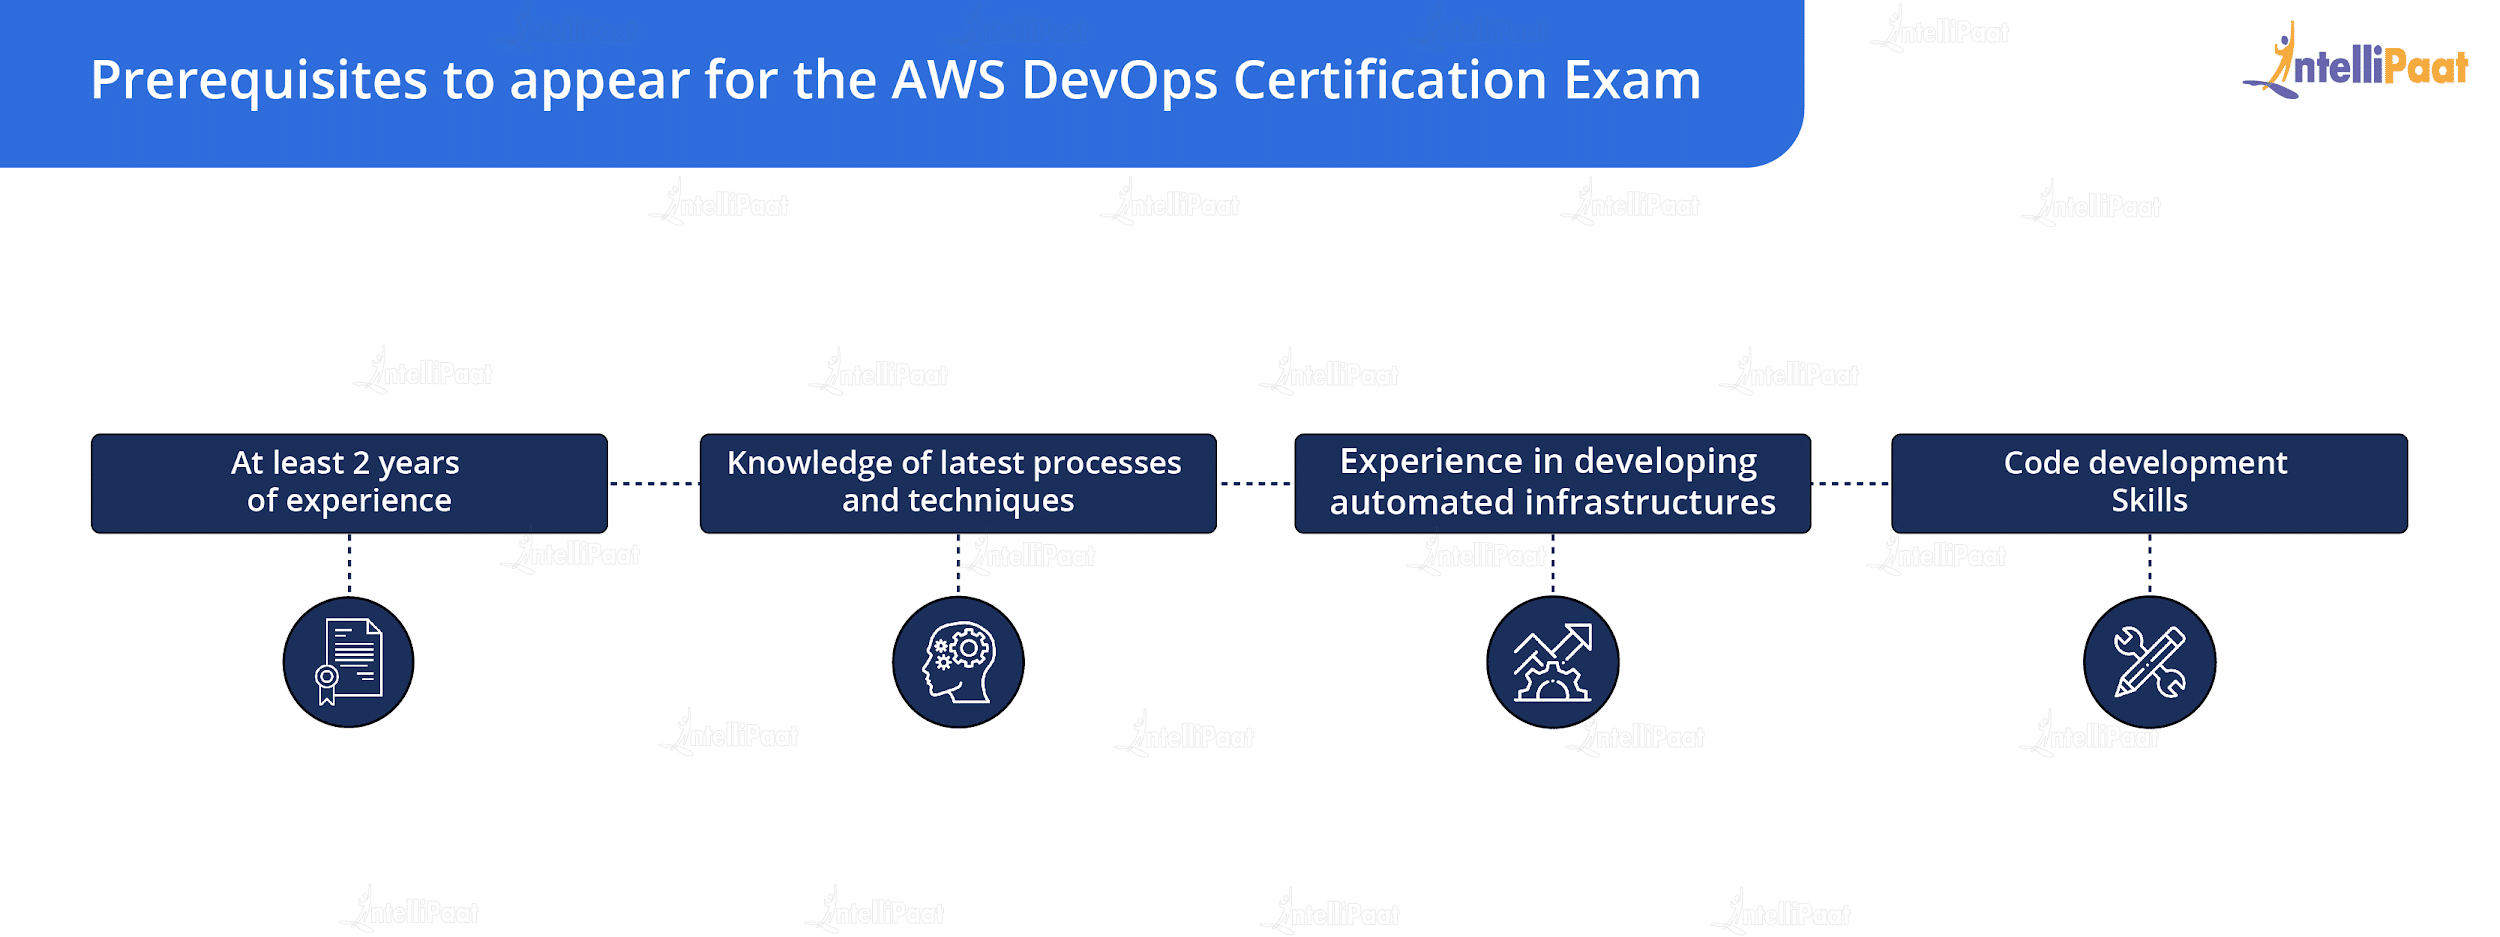 Prerequisites to Appear for the AWS DevOps Certification Exam